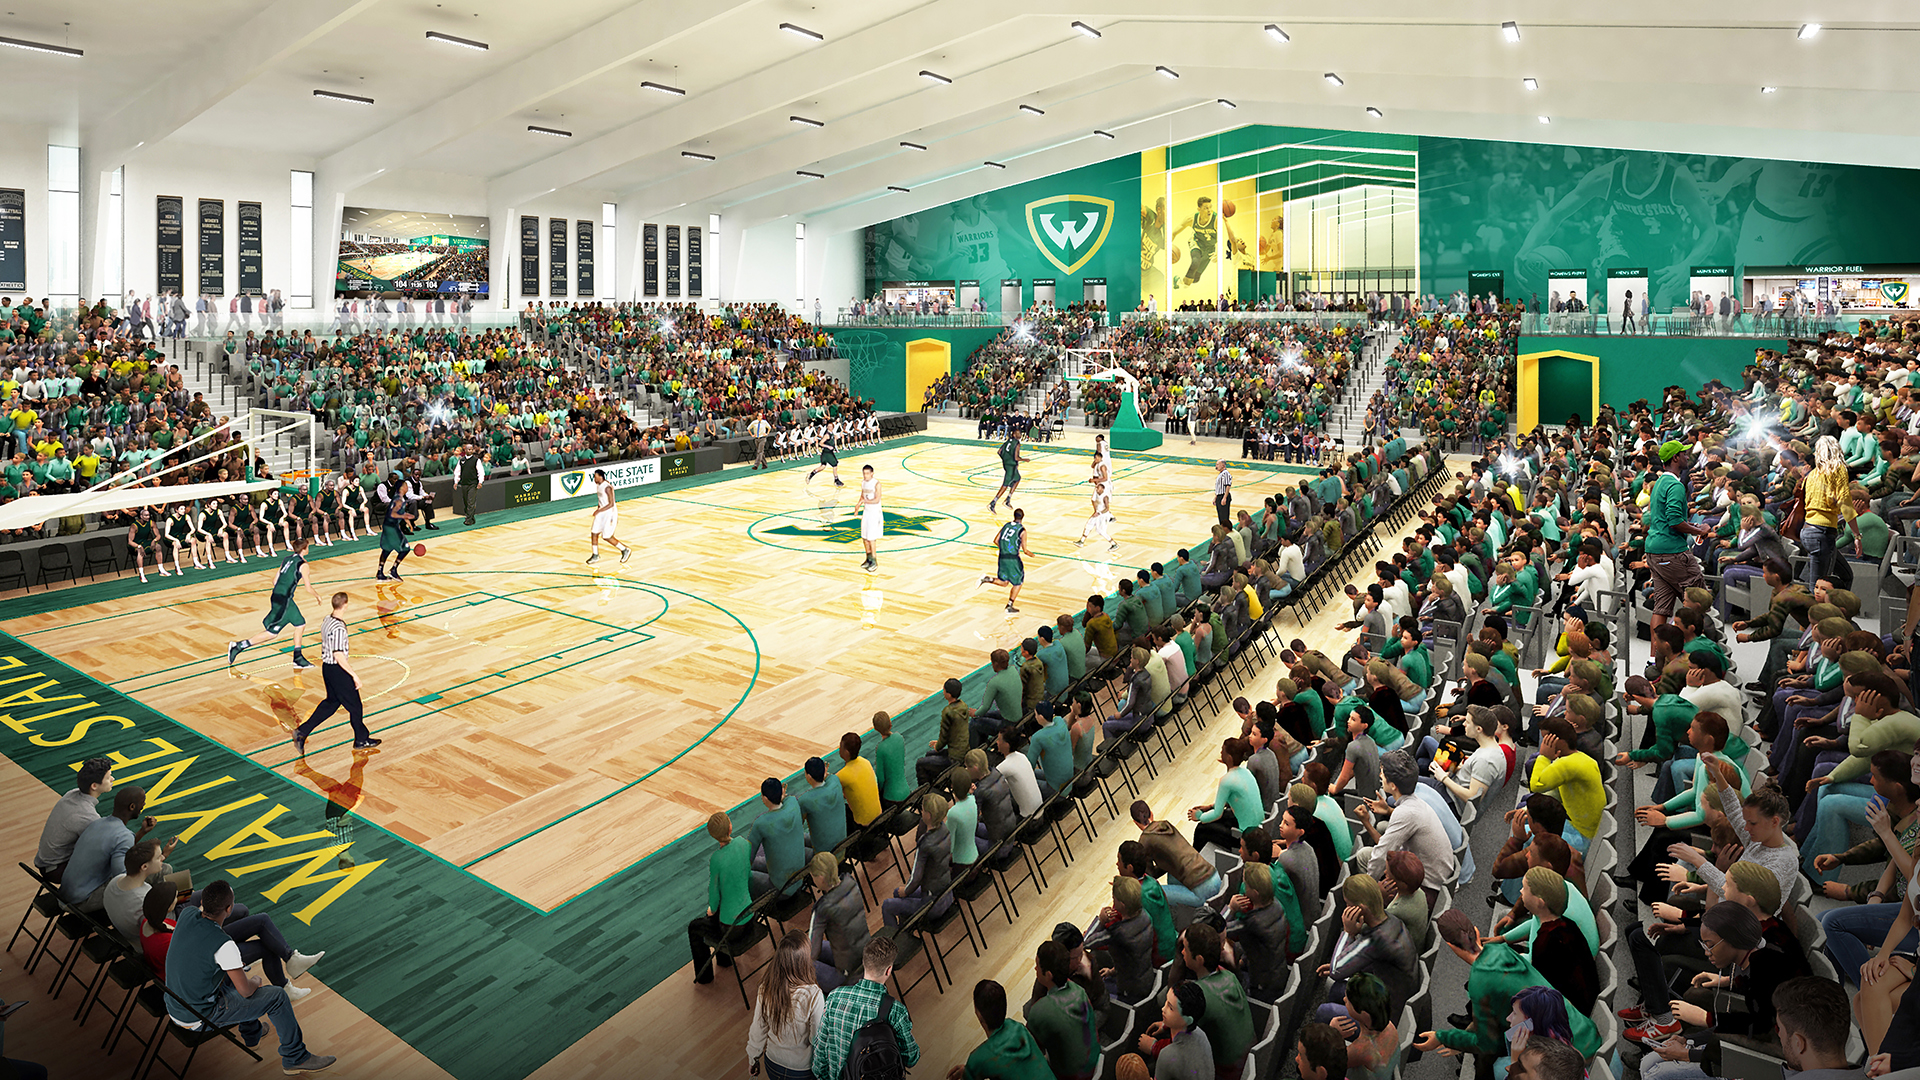 afdd912af Wayne State Announces Plans To Build New Basketball Arena - Wayne ...